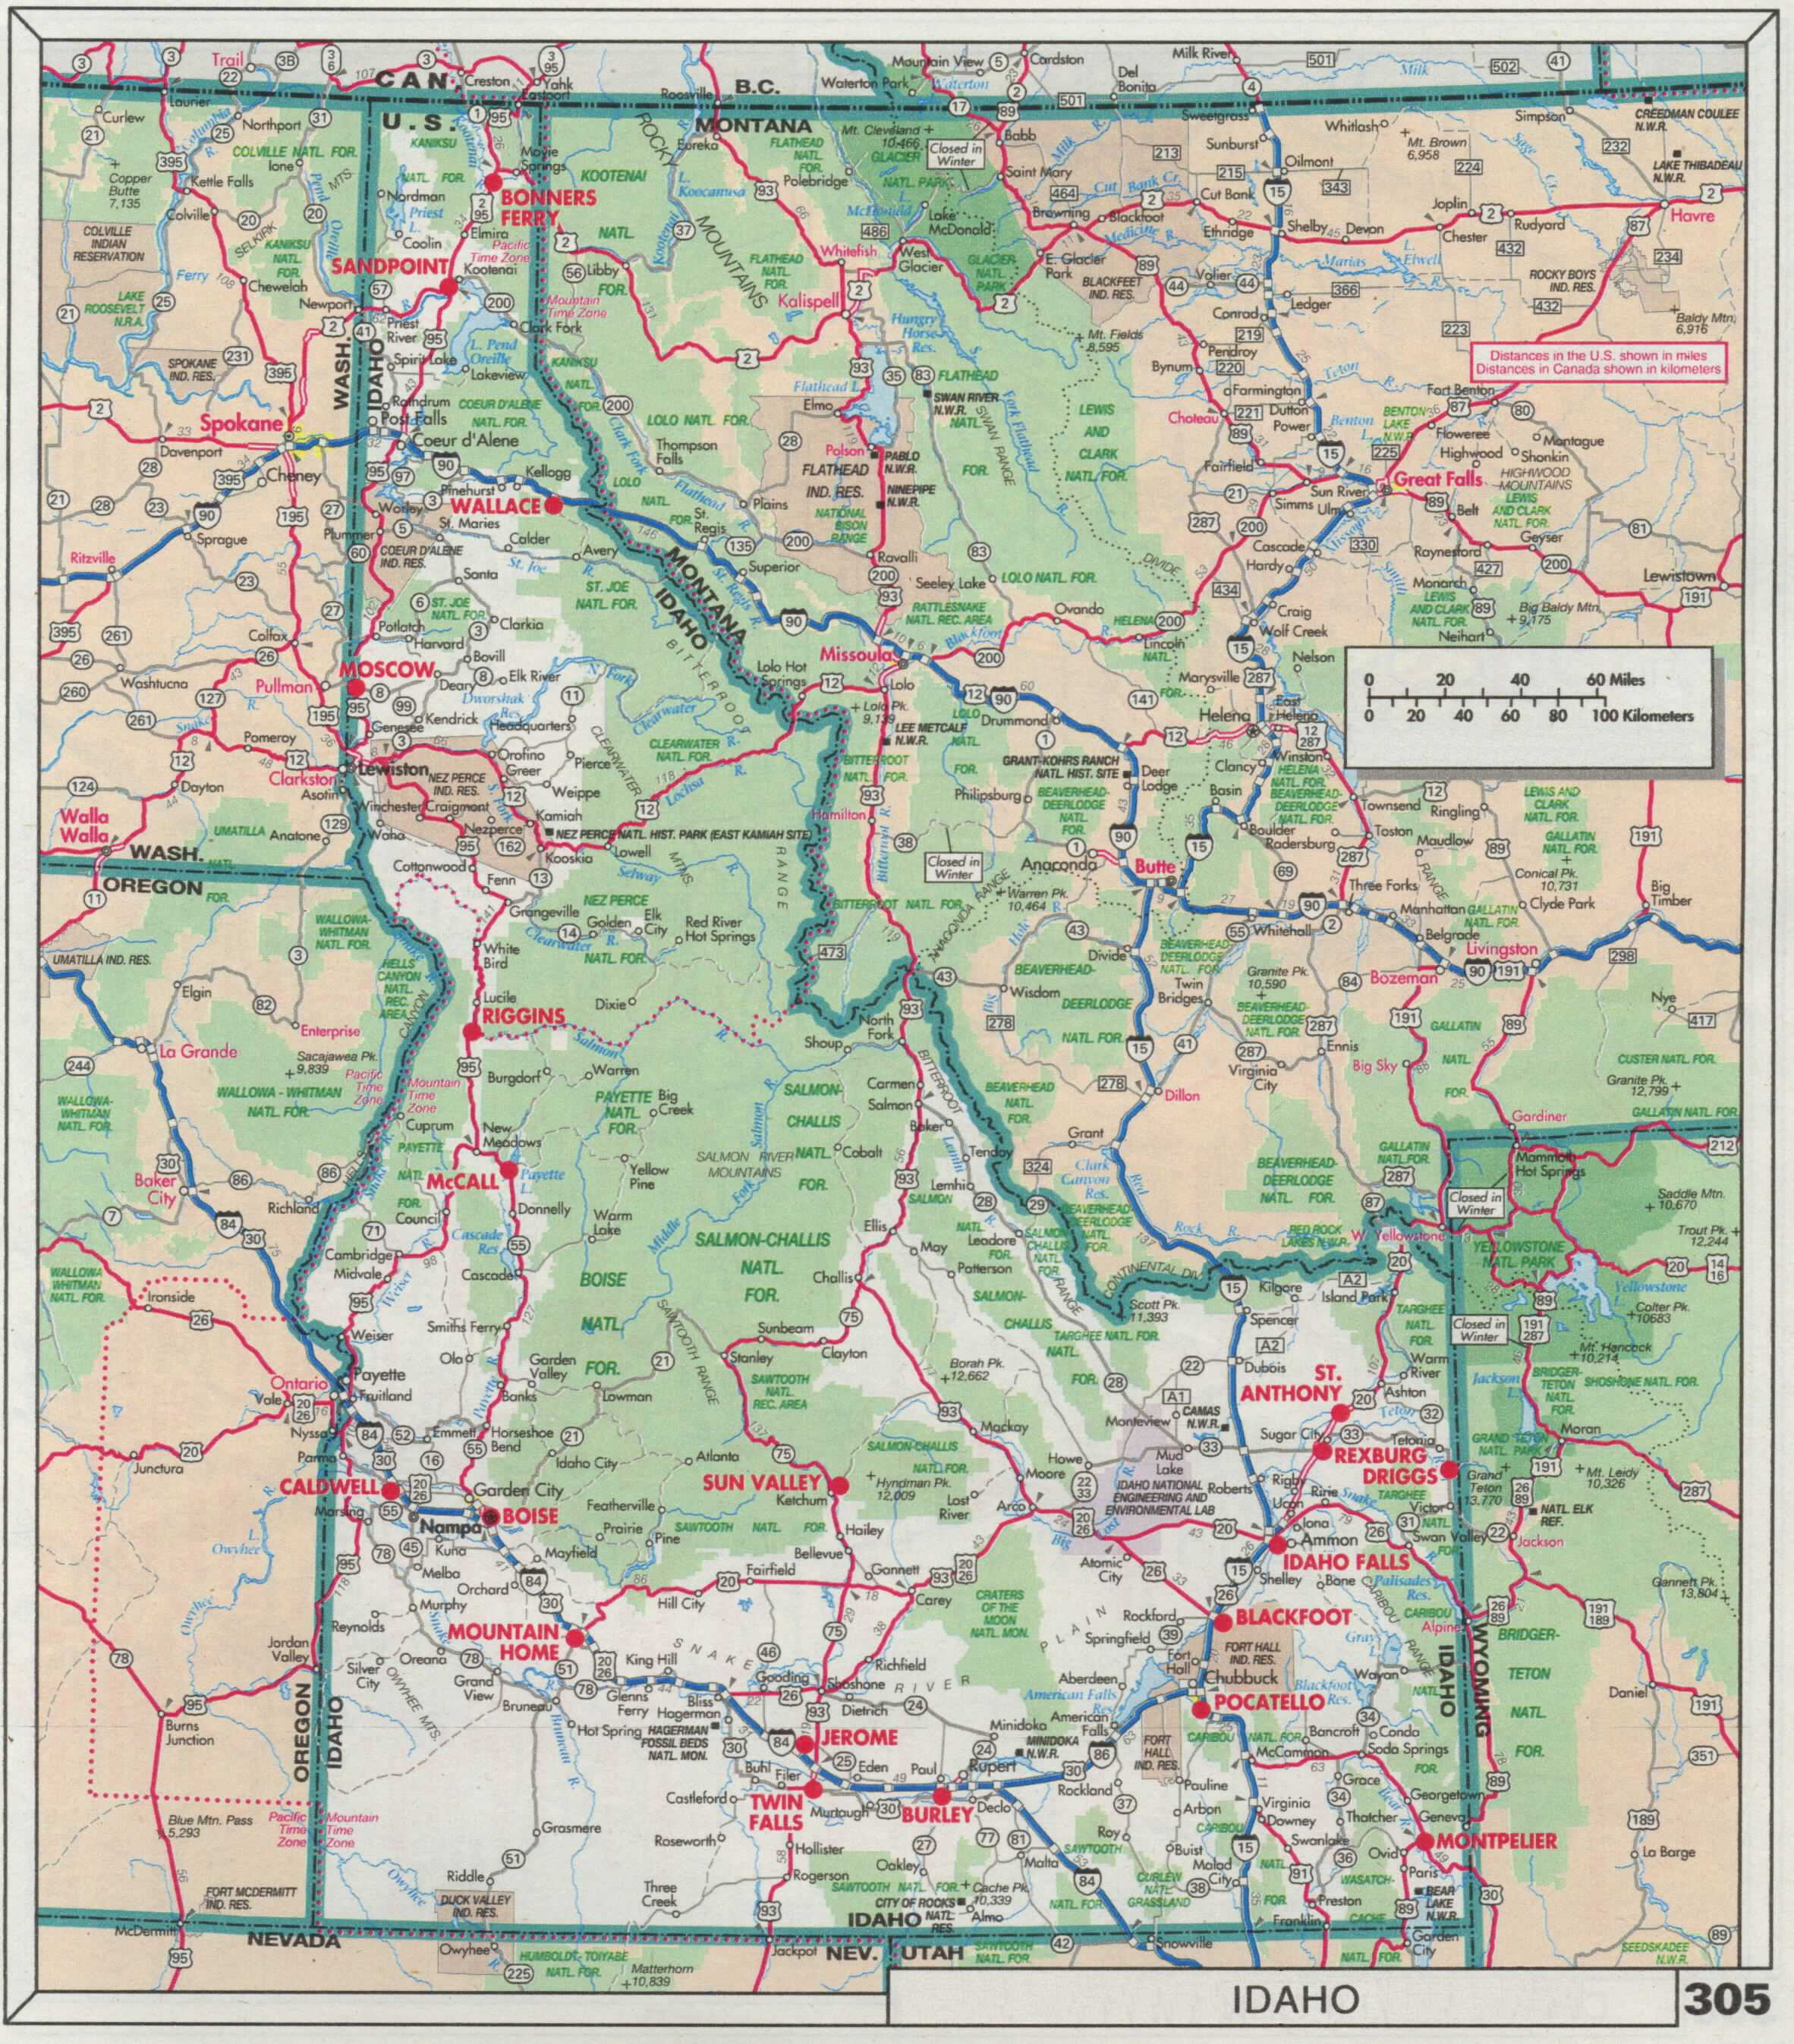 ky state map with cities with Maps on Map likewise Product further Dale Hollow Lake Photo Of Town That Drowned Goes Viral On Facebook also 209206345164371112 additionally Az Map.